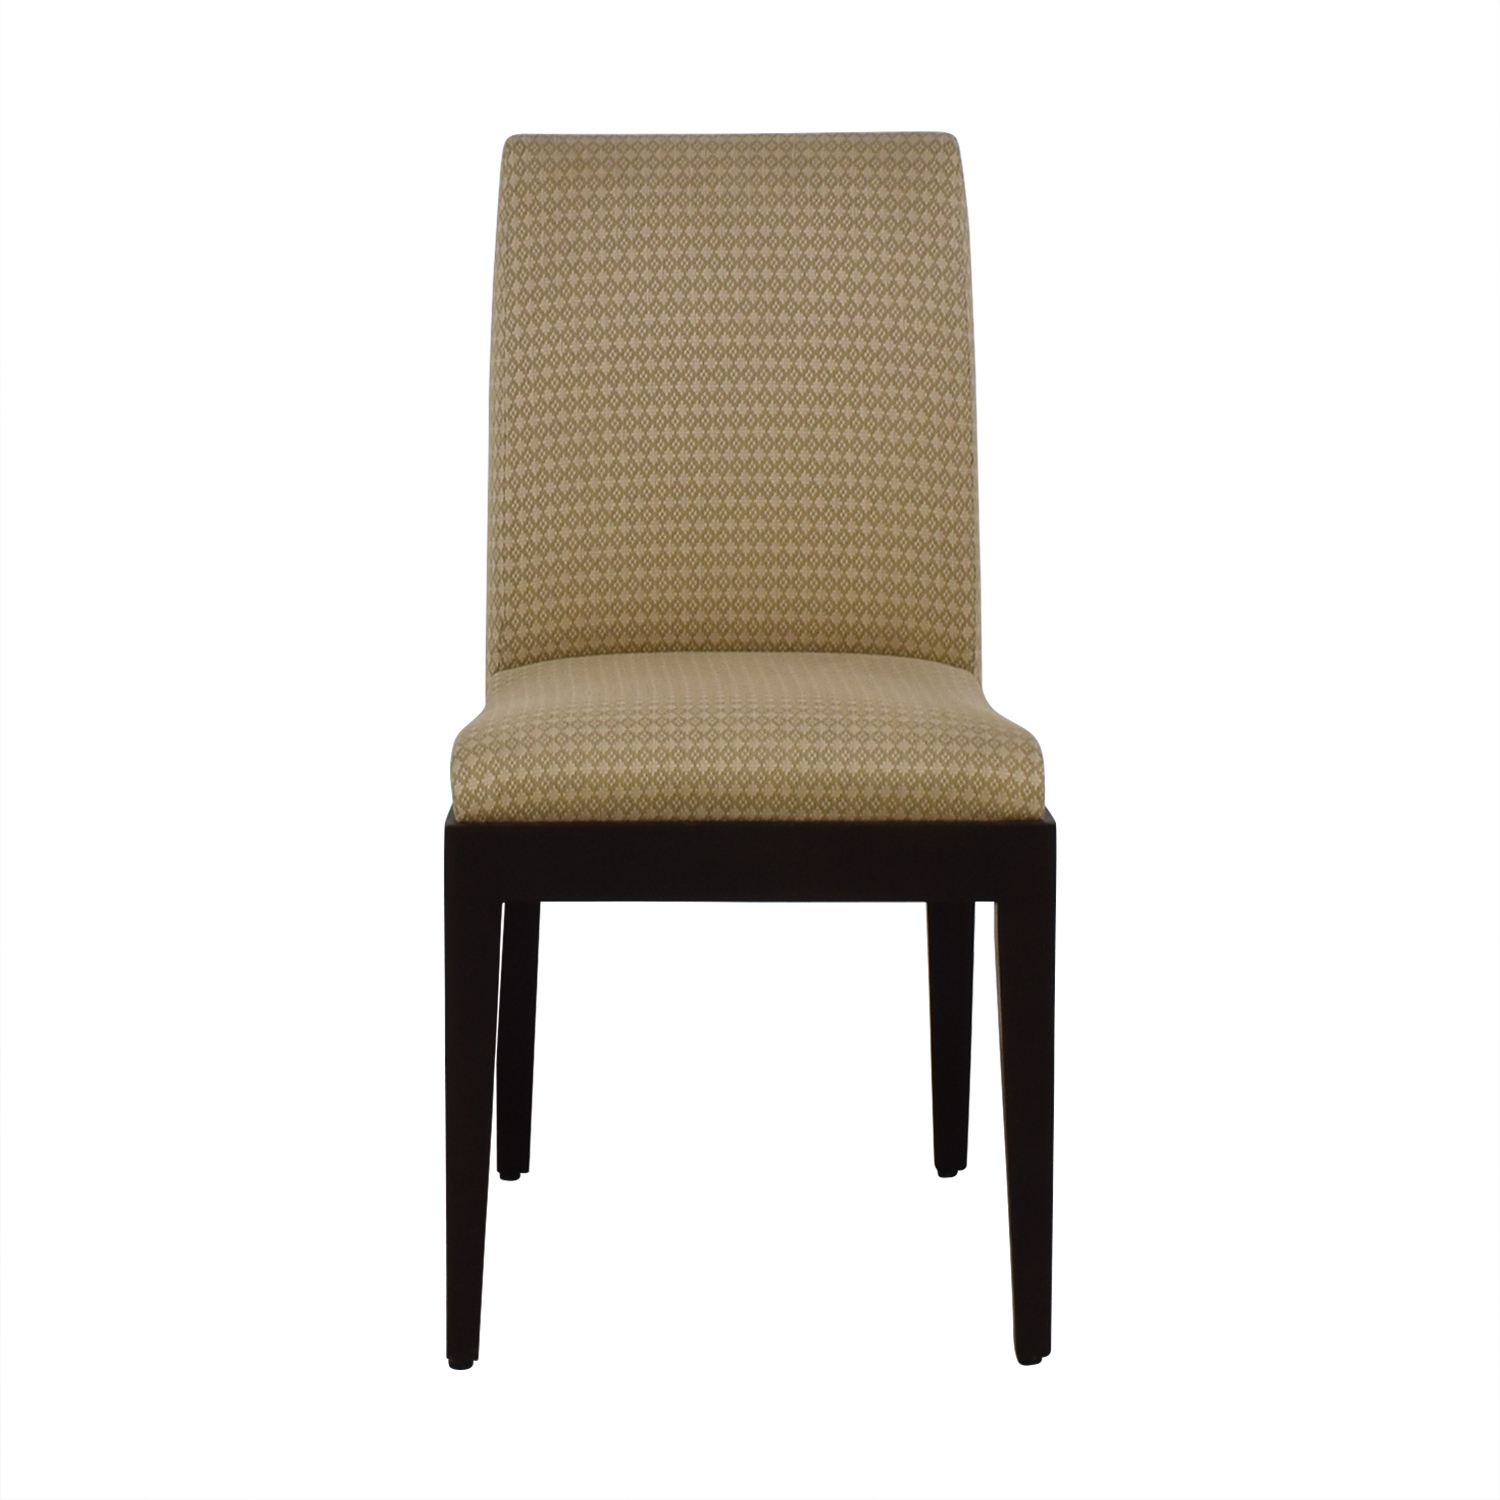 Furniture Masters Furniture Masters Accent Chair price